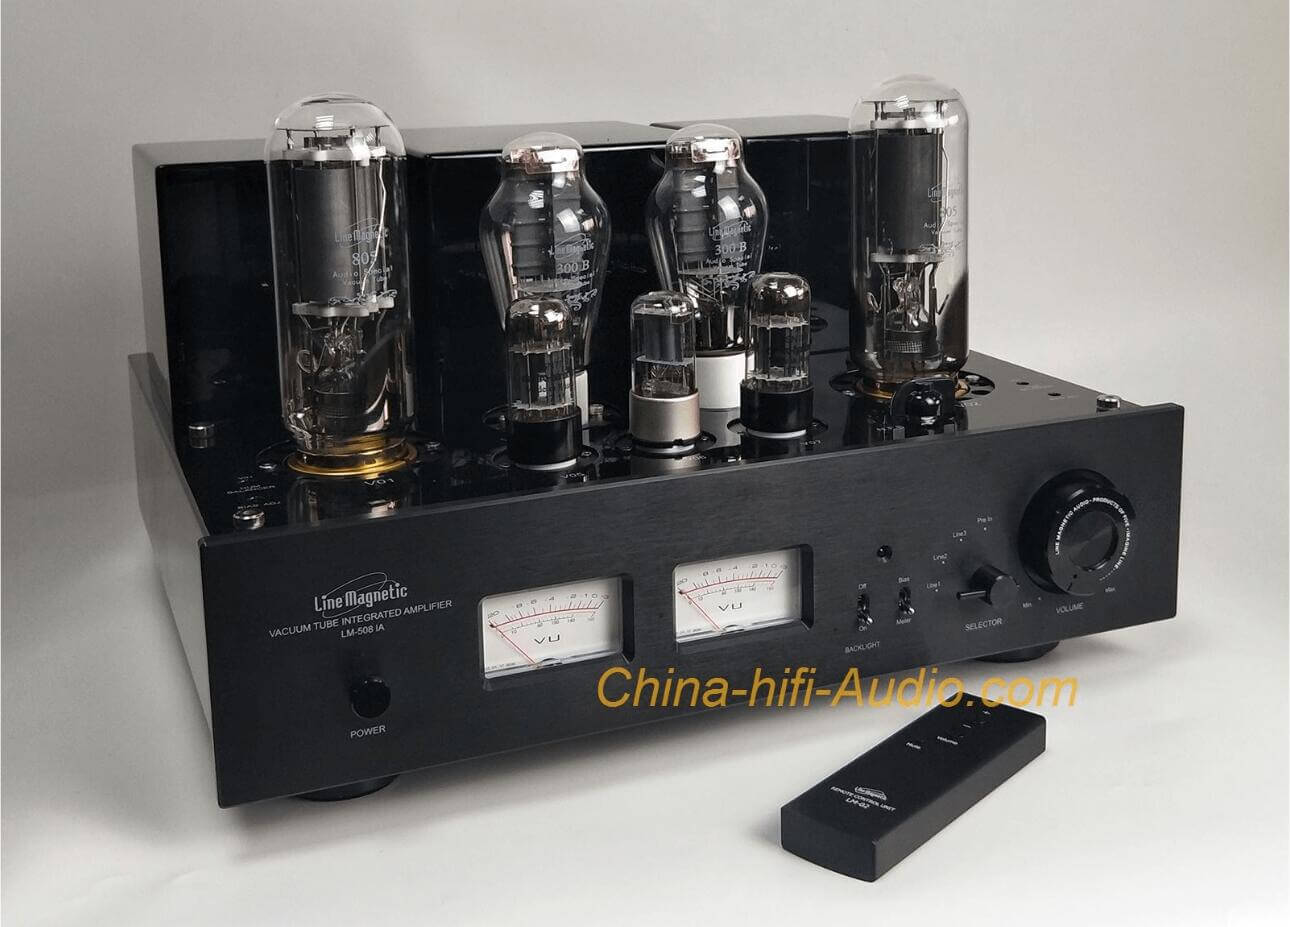 China-hifi-Audio Brings to the Market Next-Generation Line Magnetic Audiophile Tube Amps for Excellent Sound Quality